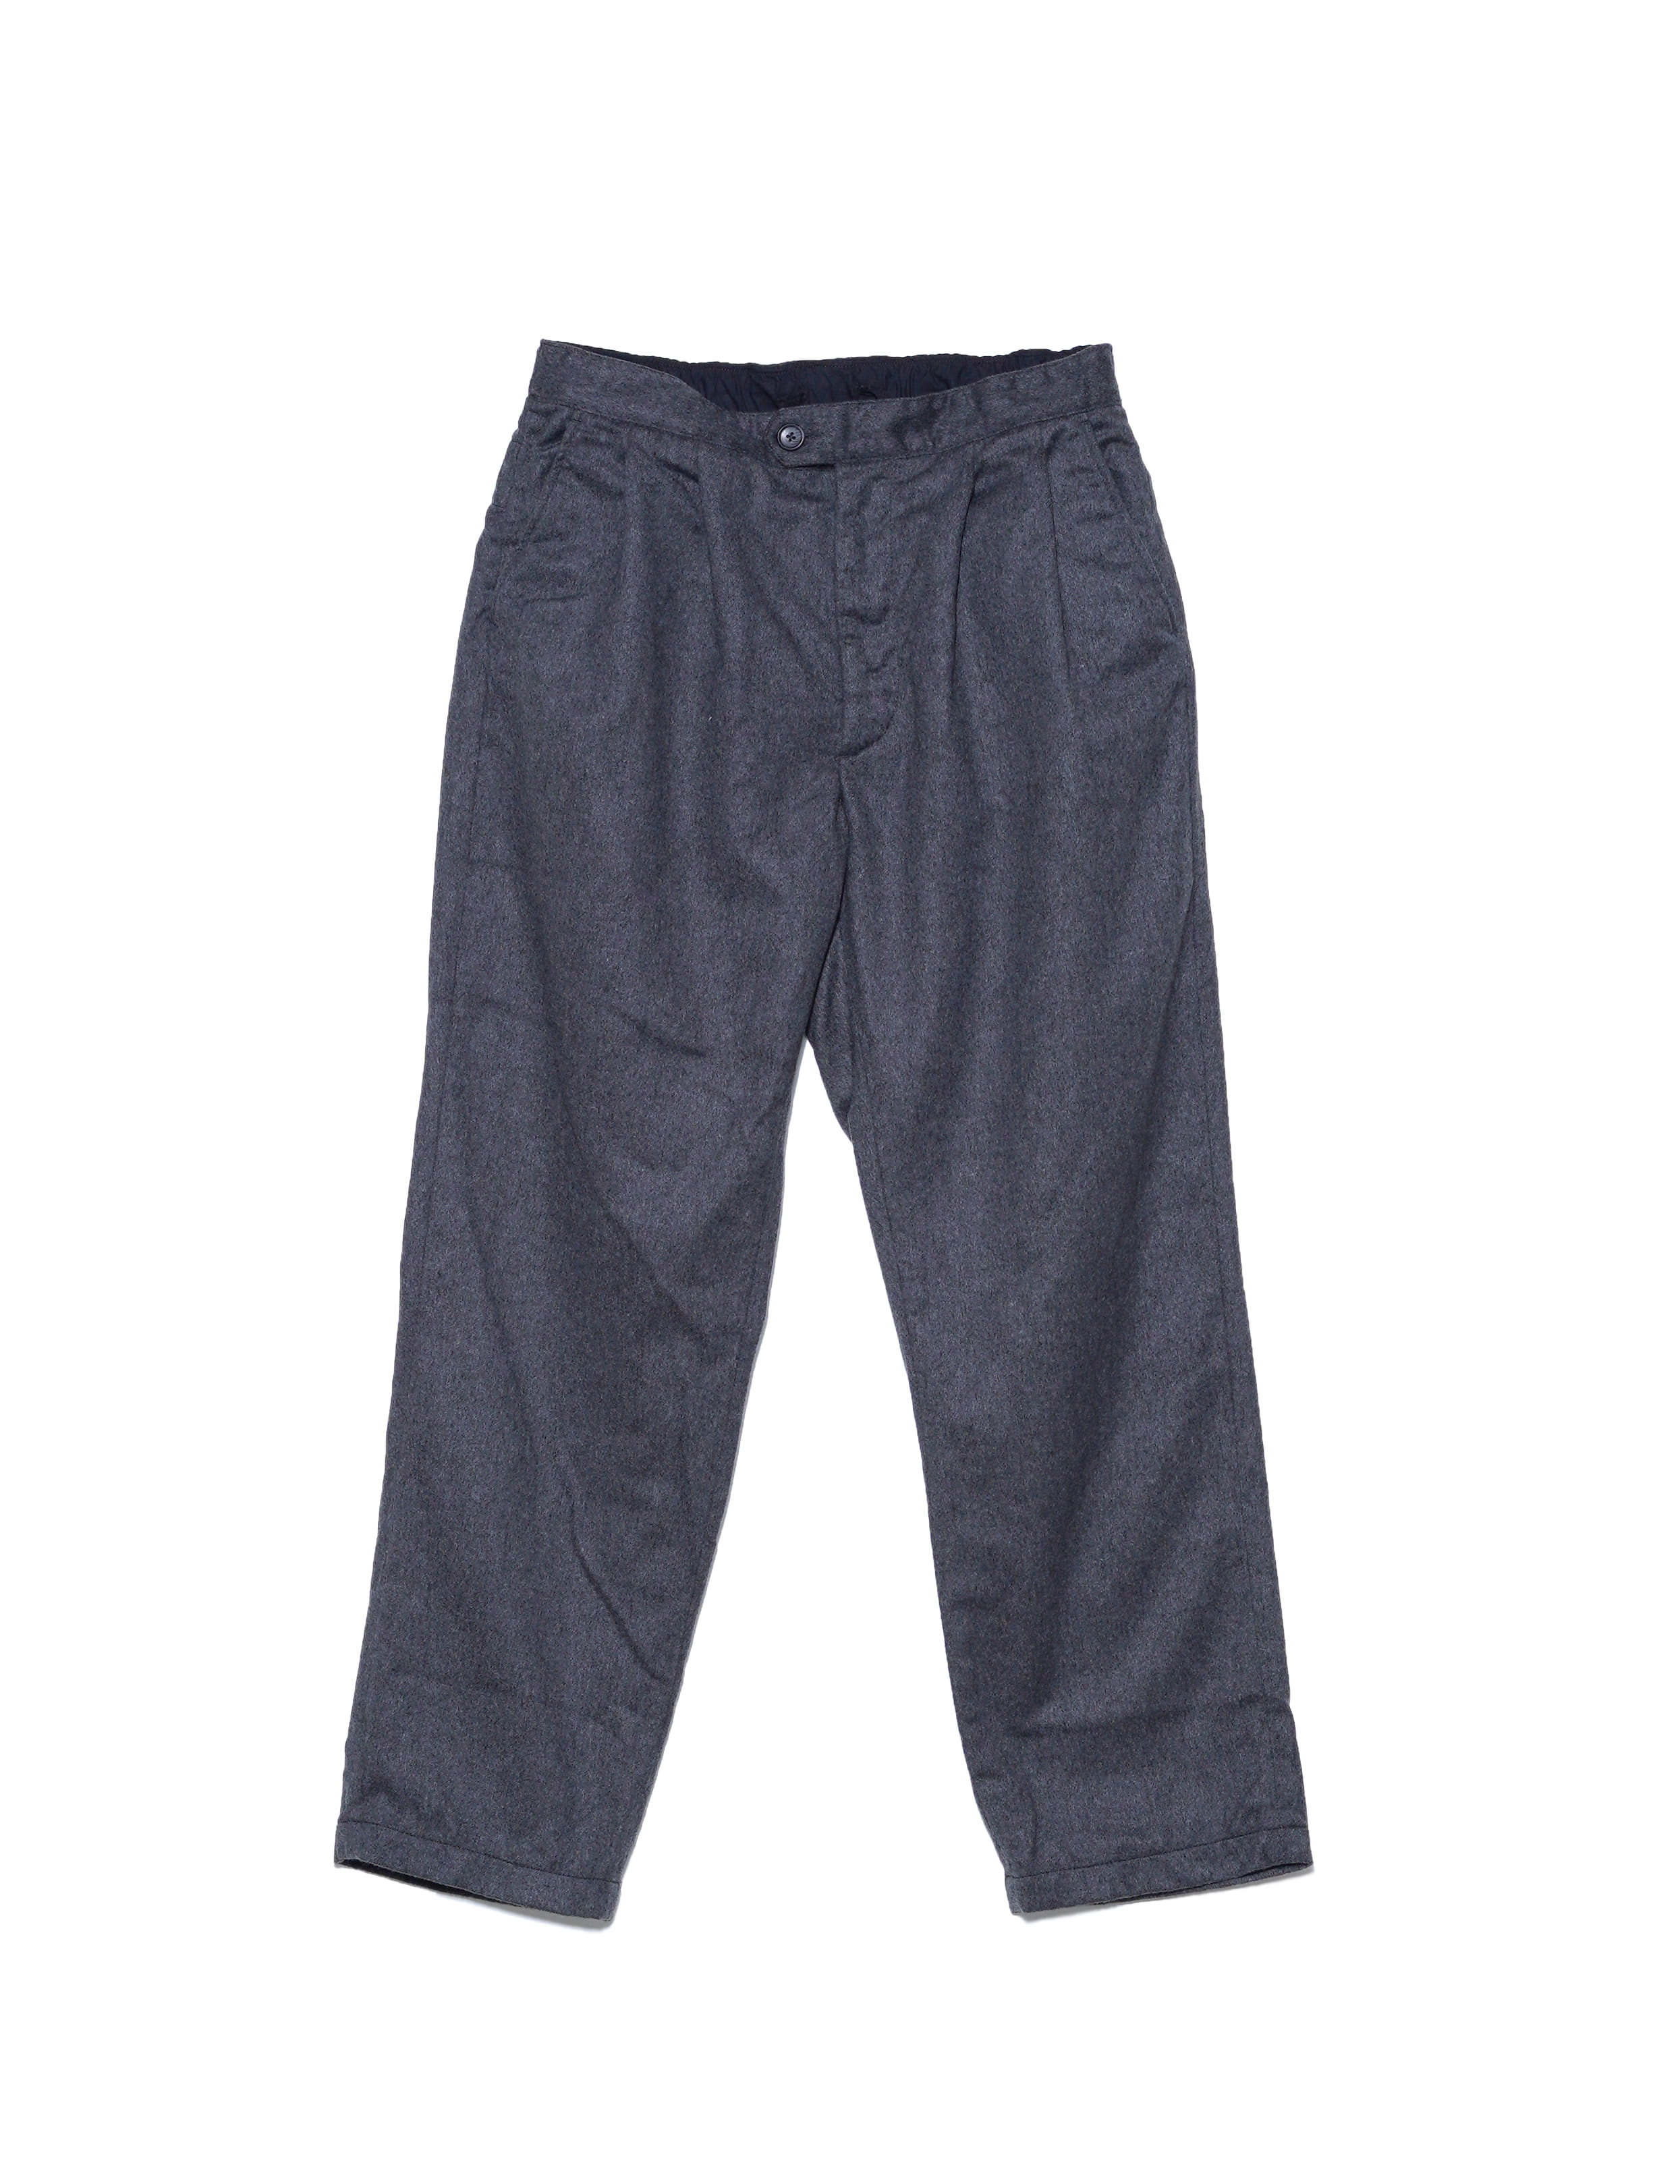 EMERSON PANT (GREY HEATHER)